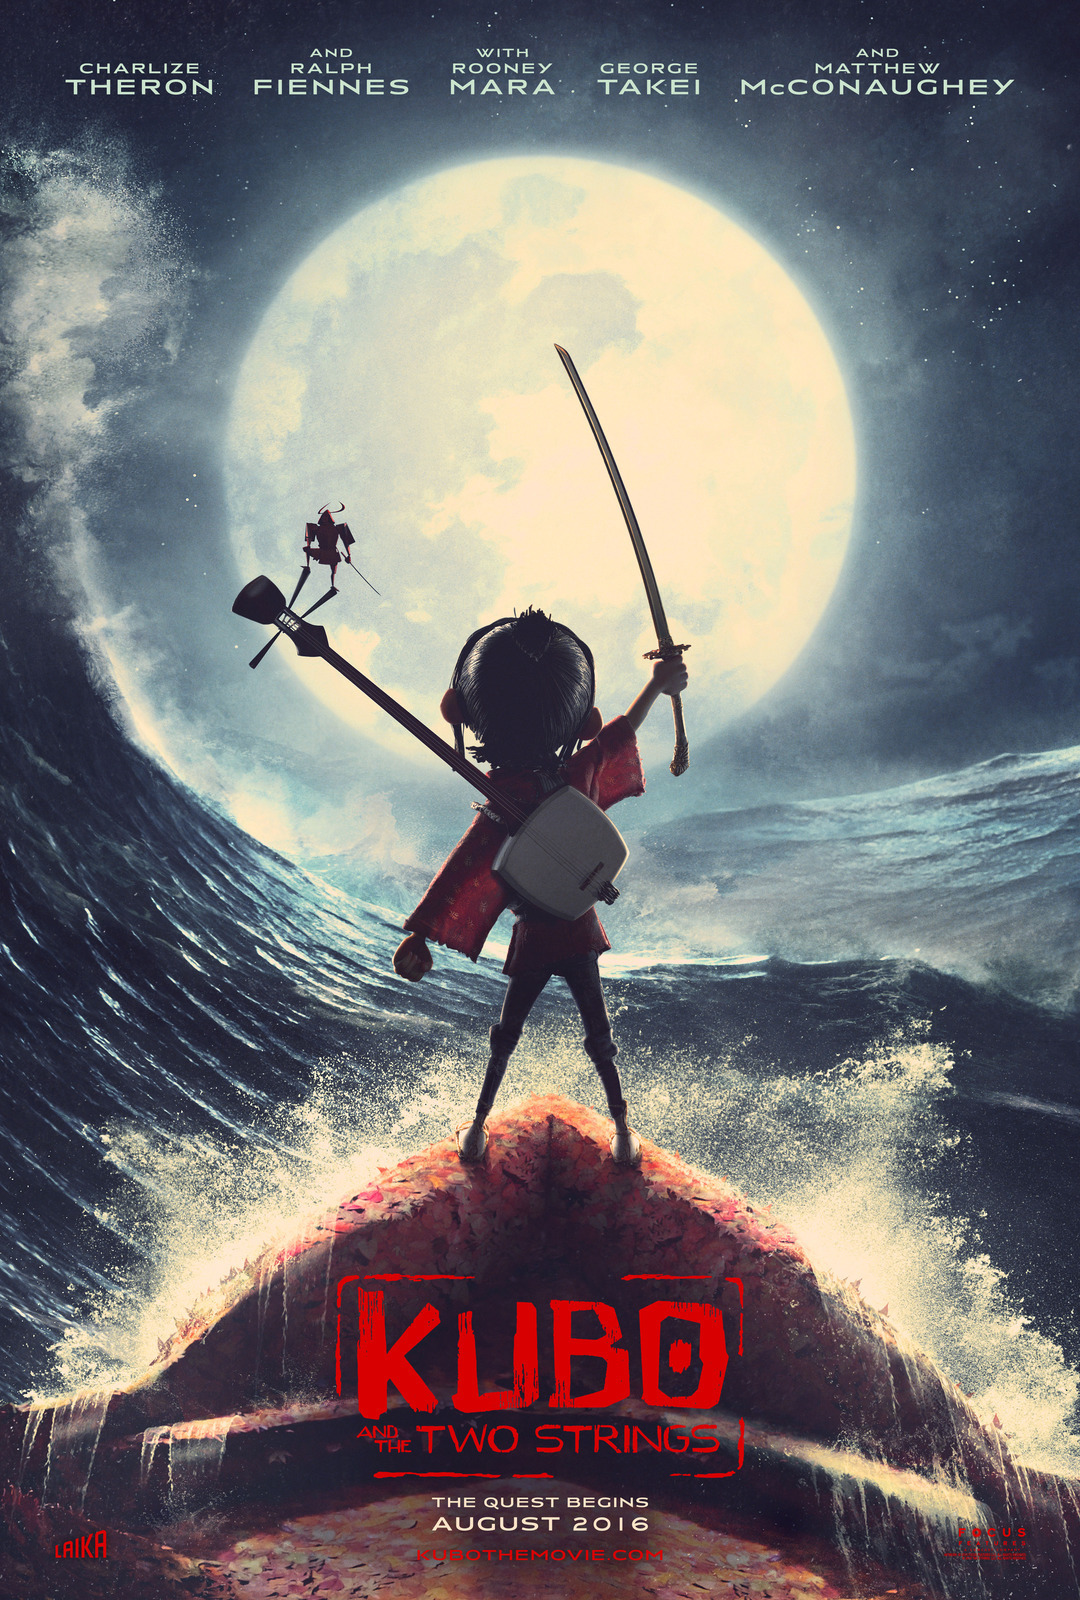 Kubo And The Two Strings film review